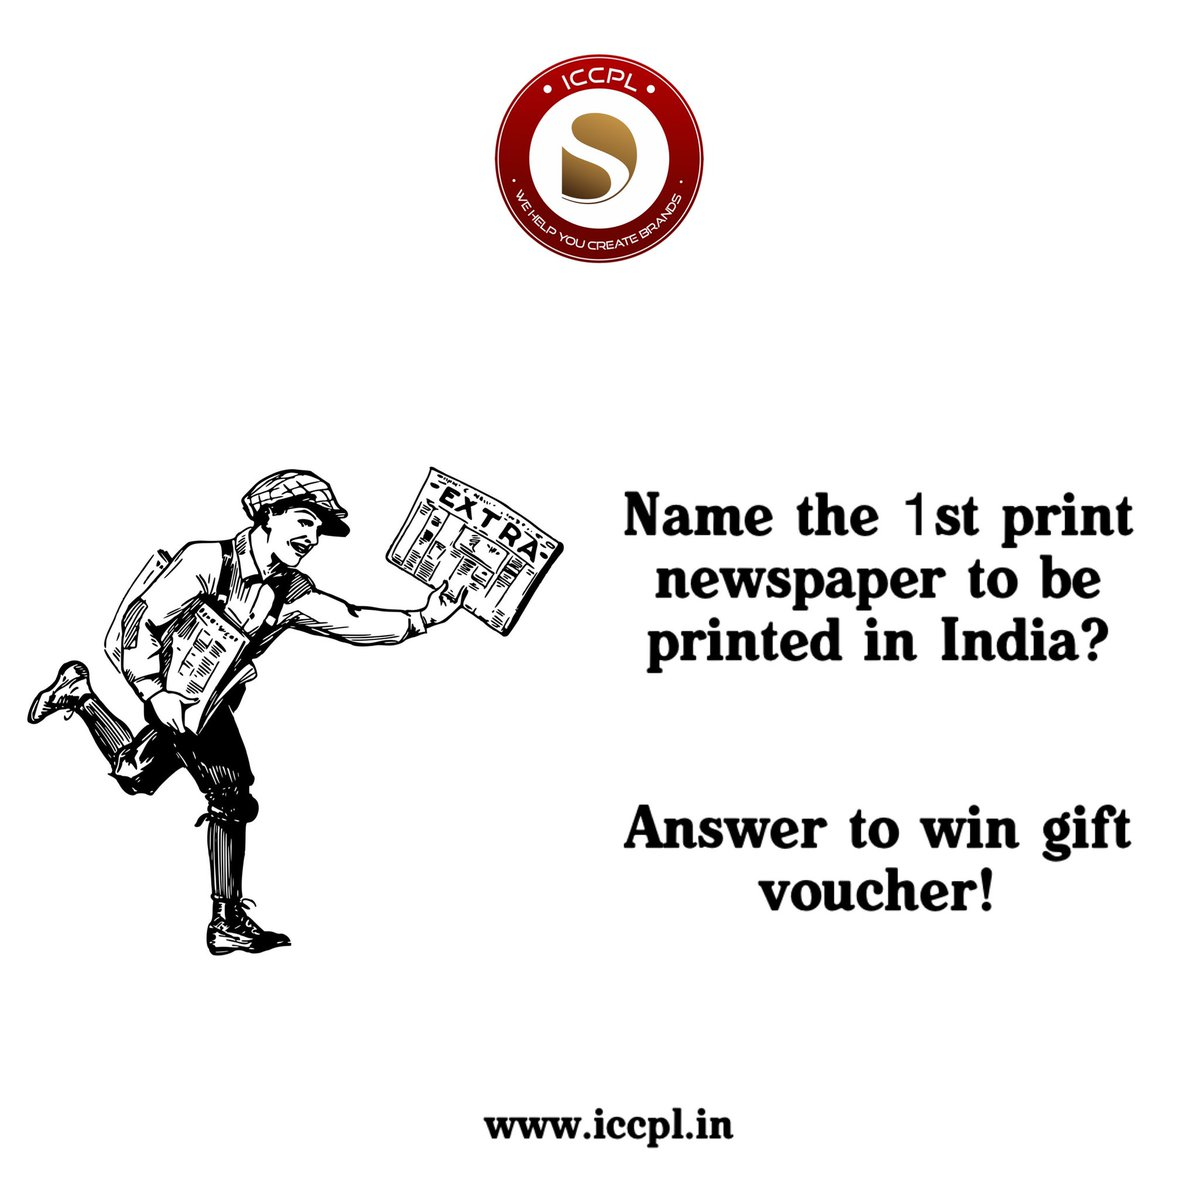 #ContestAlert  Answer a simple question & Win exciting shopping voucher!  Do's:  ✅ Answer in the below comment section  ✅ Like the Page  ✅ Tag 3 Friends  #ICCPL #Rewards